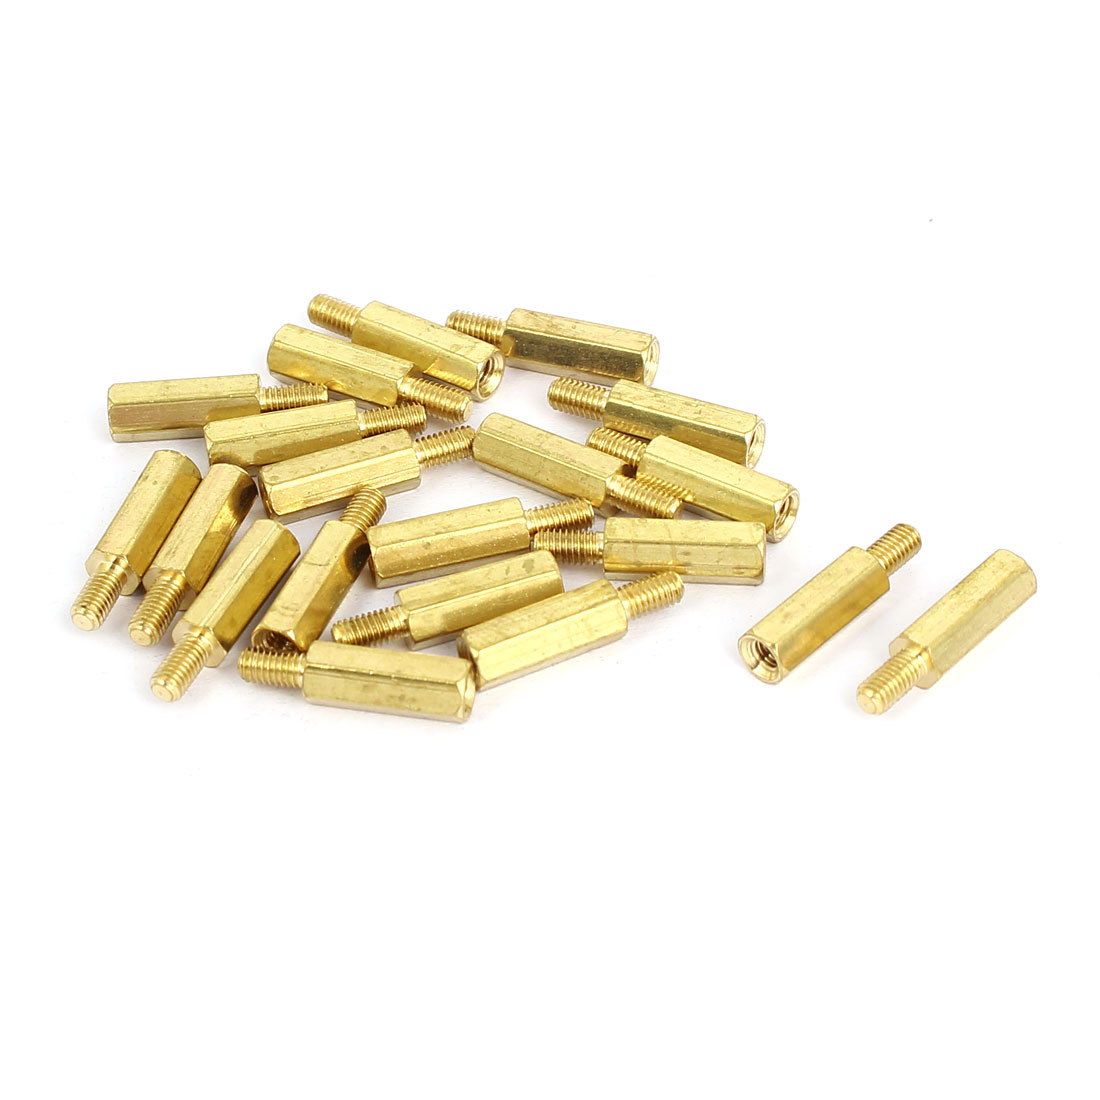 M3x13+6mm Male to Female Hexagonal Standoff Spacer Nuts Washers Brass Tone 20pcs